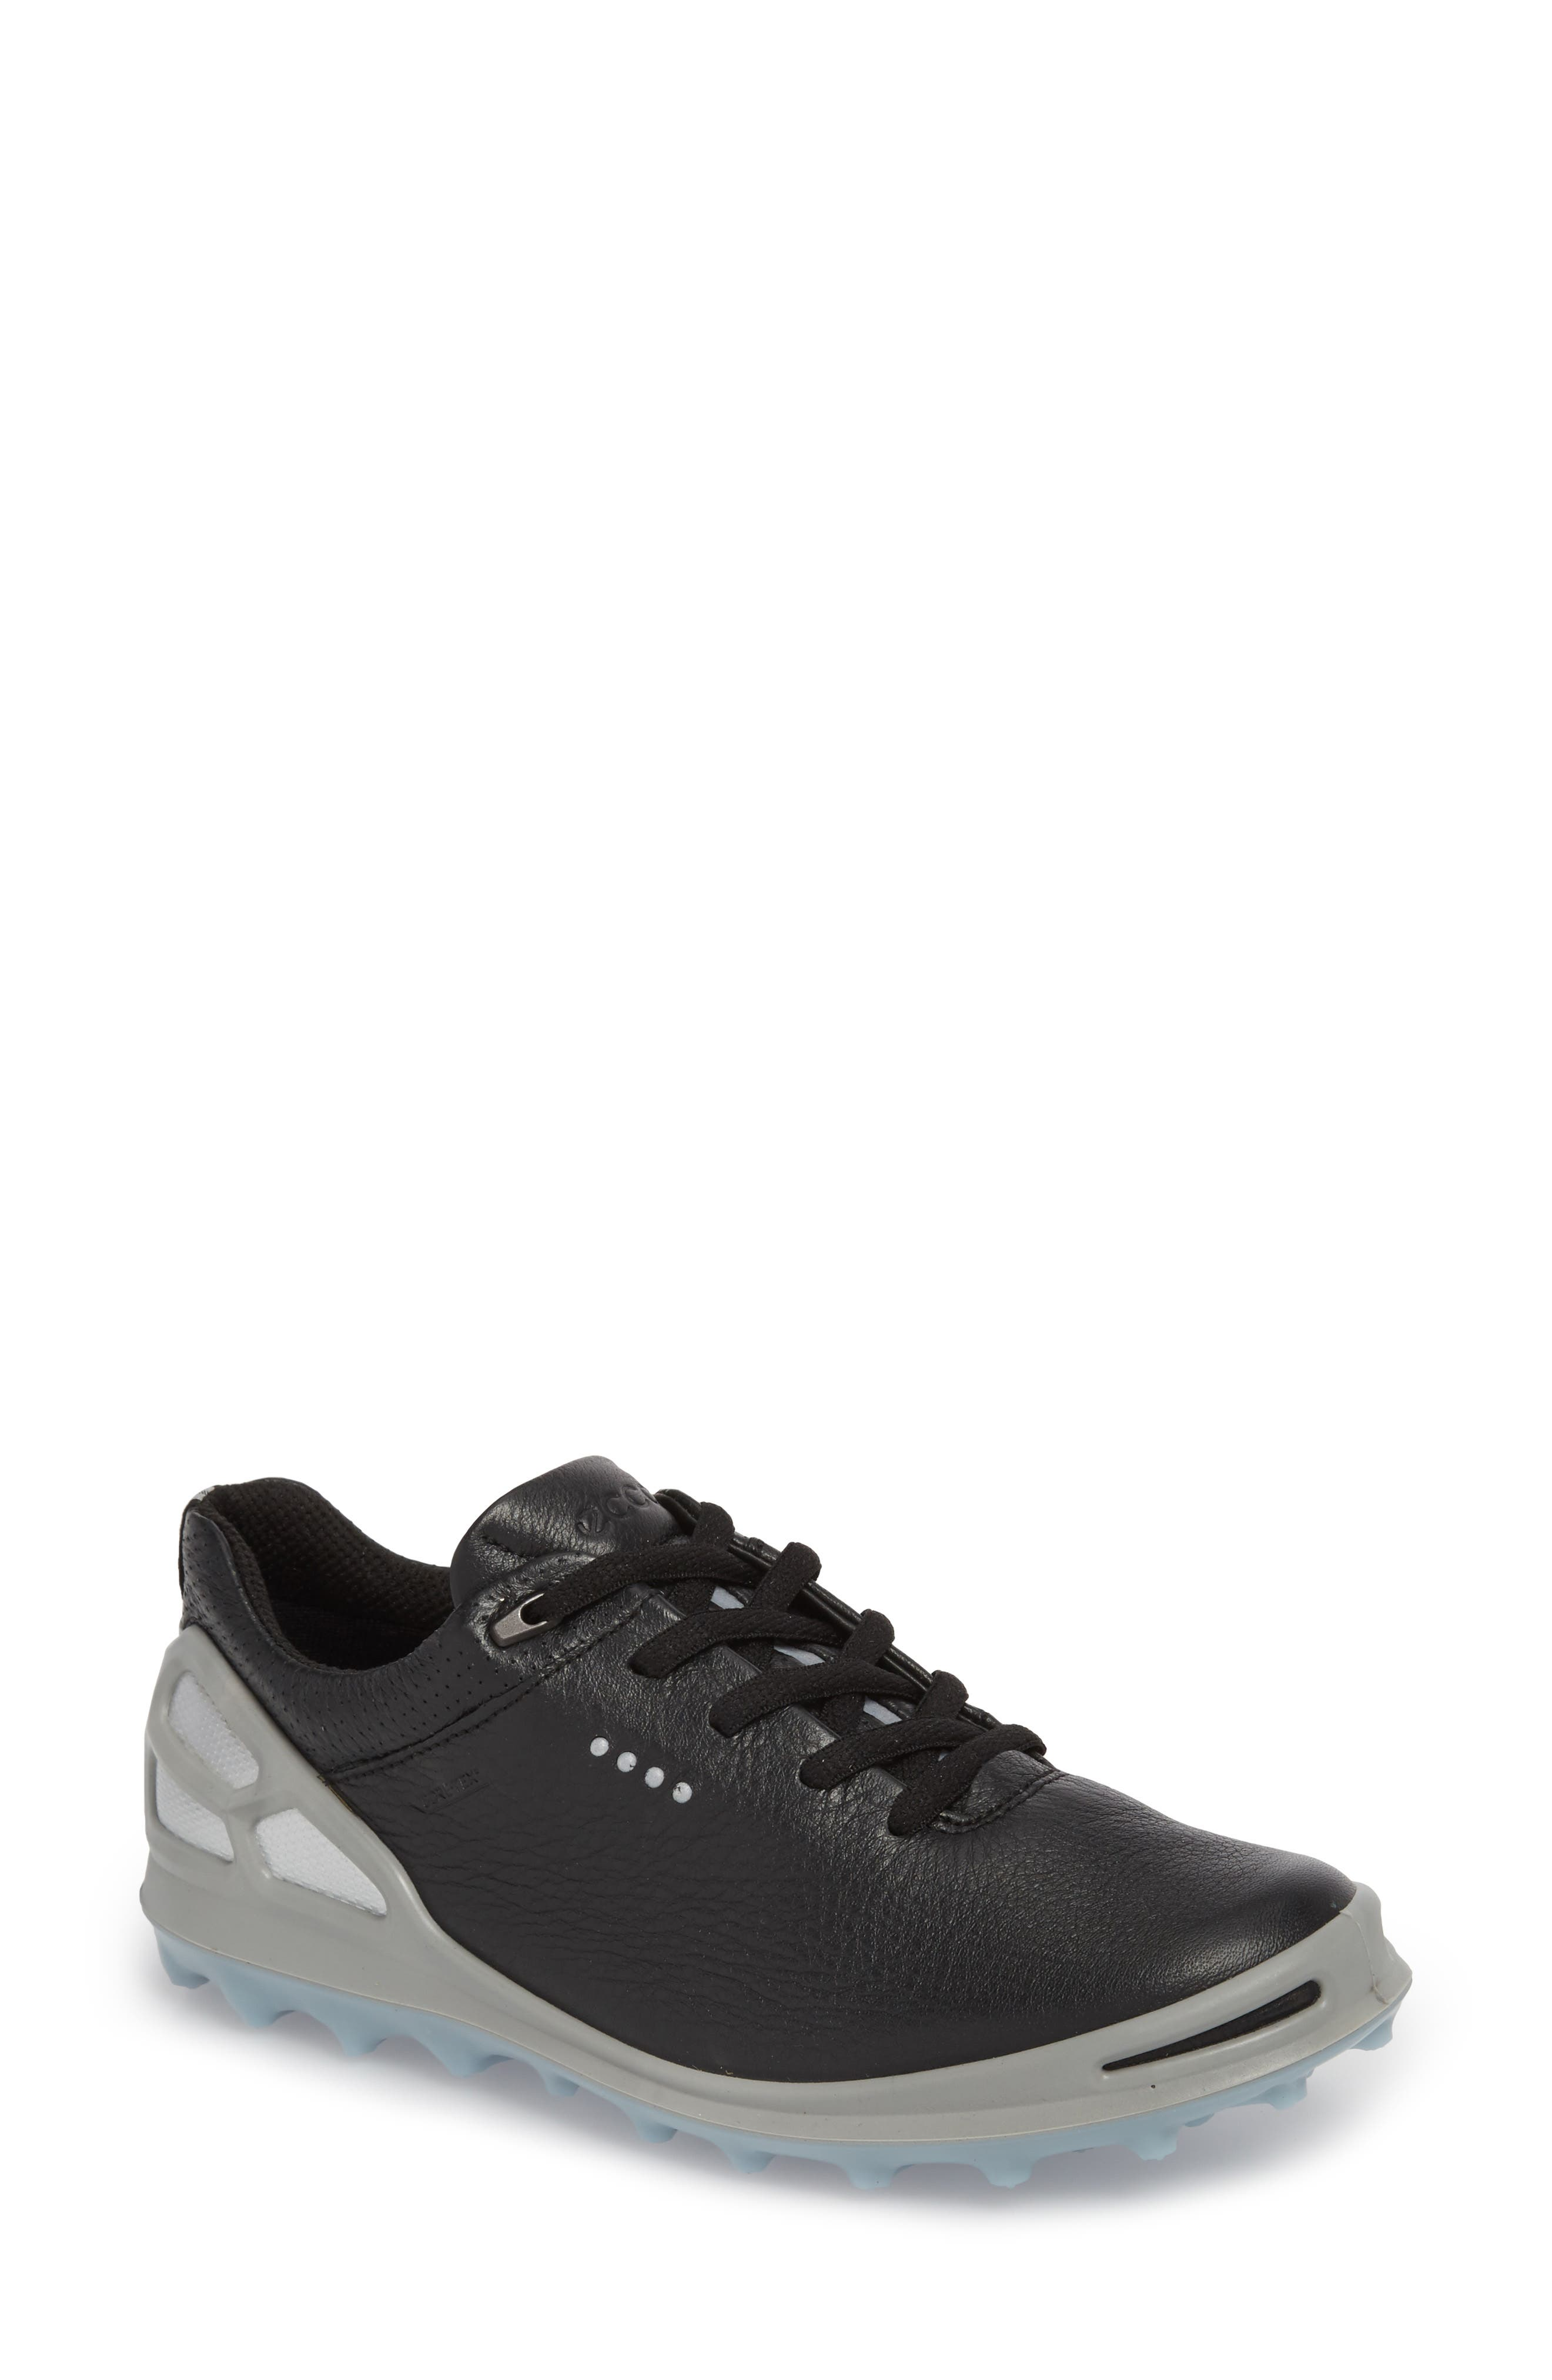 Golf Cage Pro Gore-Tex<sup>®</sup> Waterproof Shoe,                             Main thumbnail 1, color,                             Black Leather